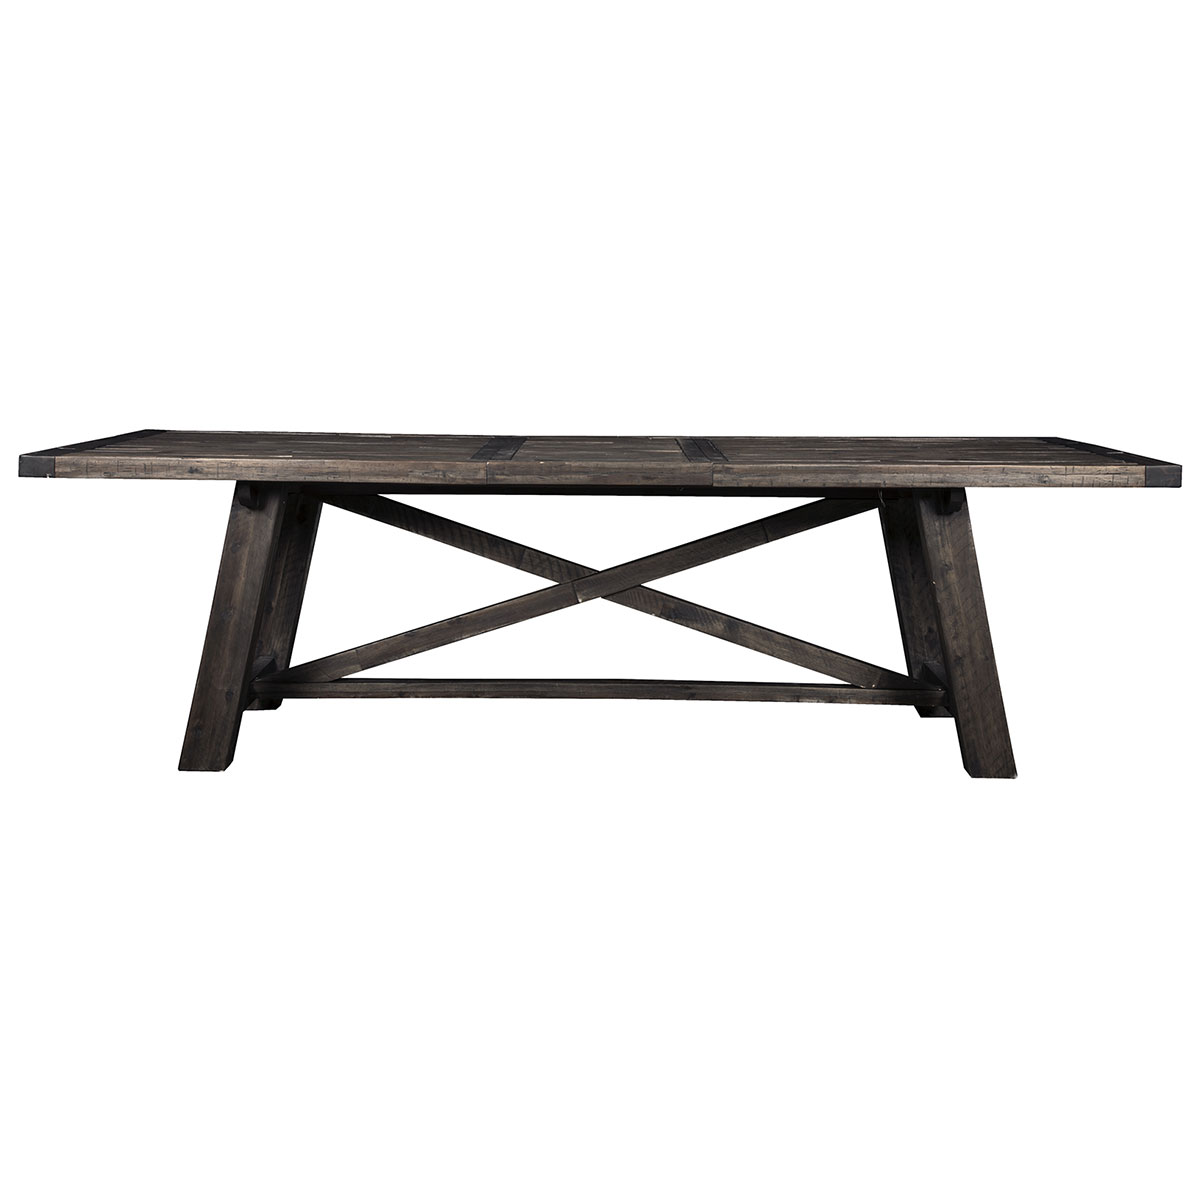 Newberry Extension Dining Table in Salvaged Grey